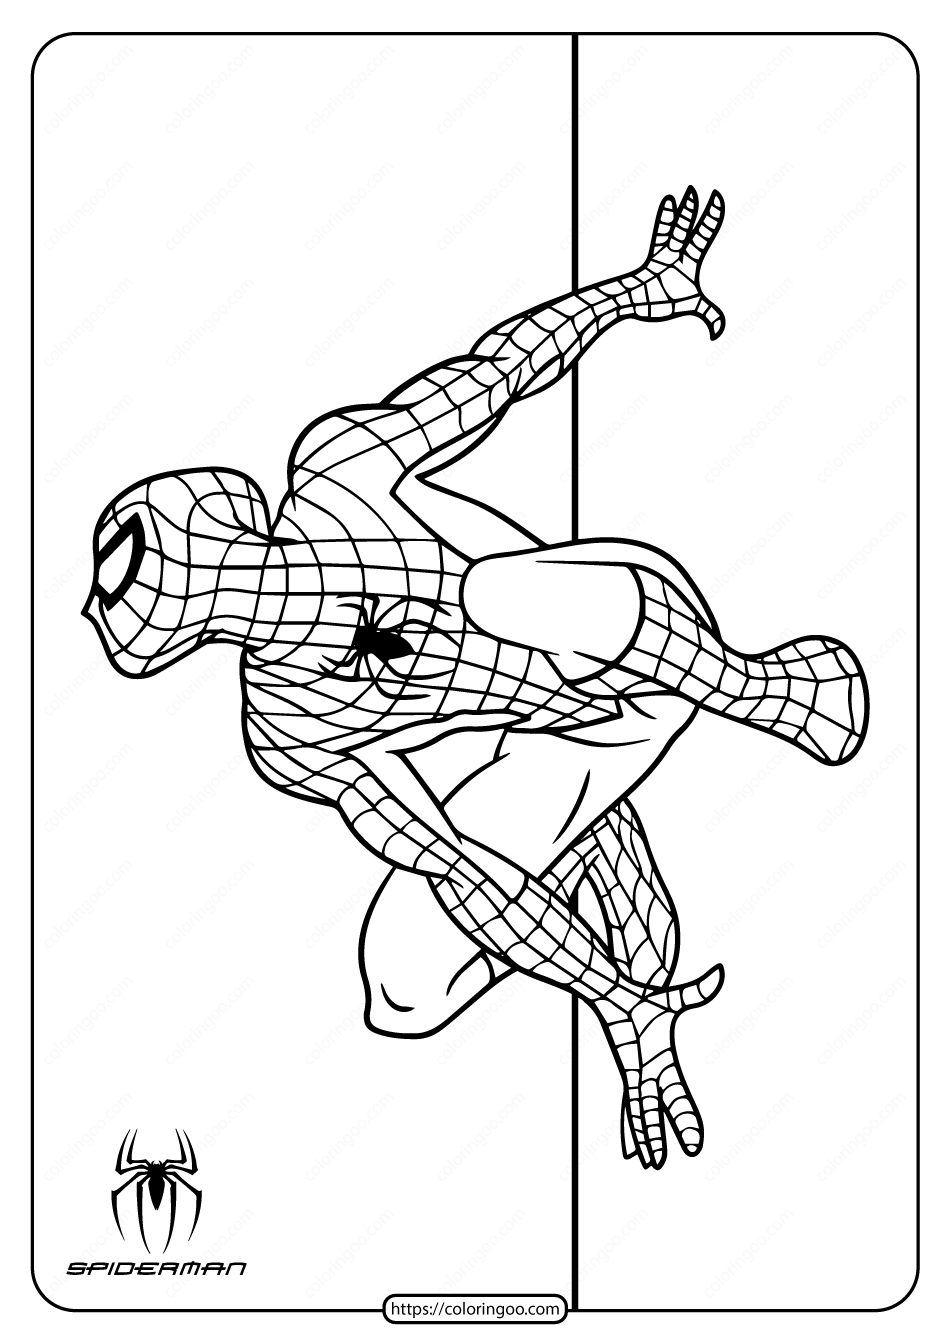 gwen stacy spiderman coloring pages gwen stacy coloring pages super kins author spiderman pages coloring stacy gwen